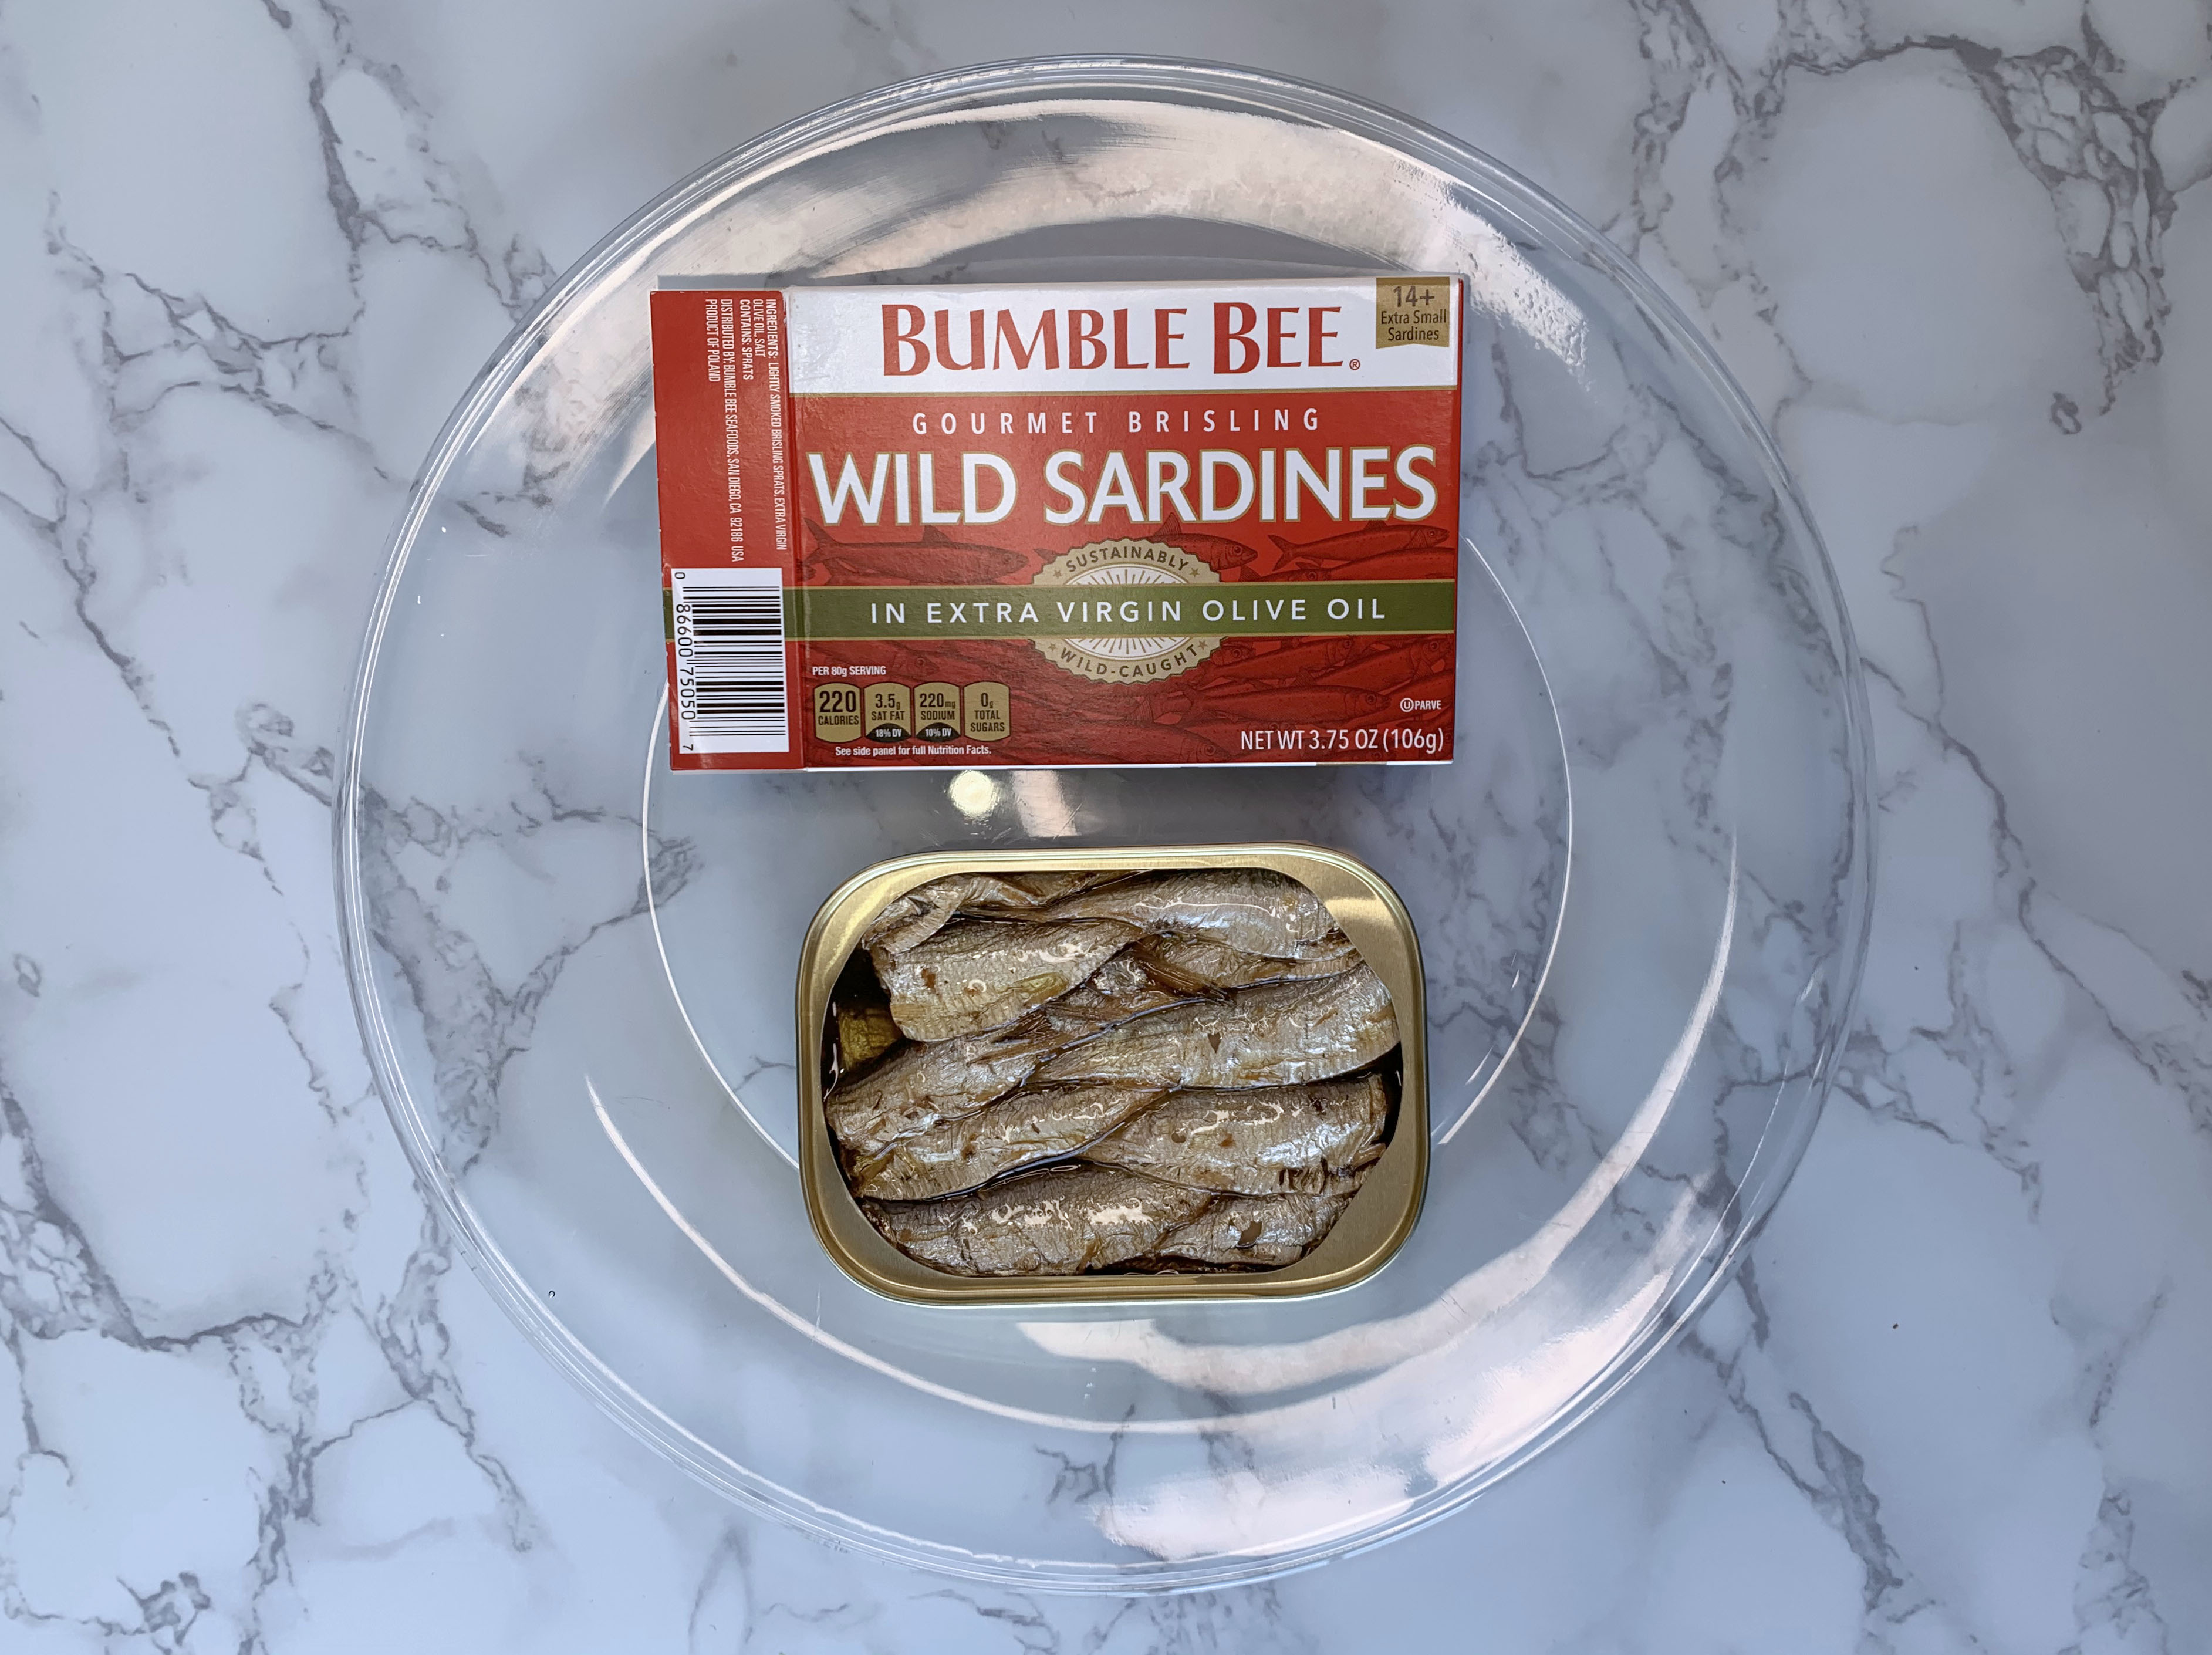 Read Bumble Bee Wild Sardines in Extra Virgin Olive Oil Review